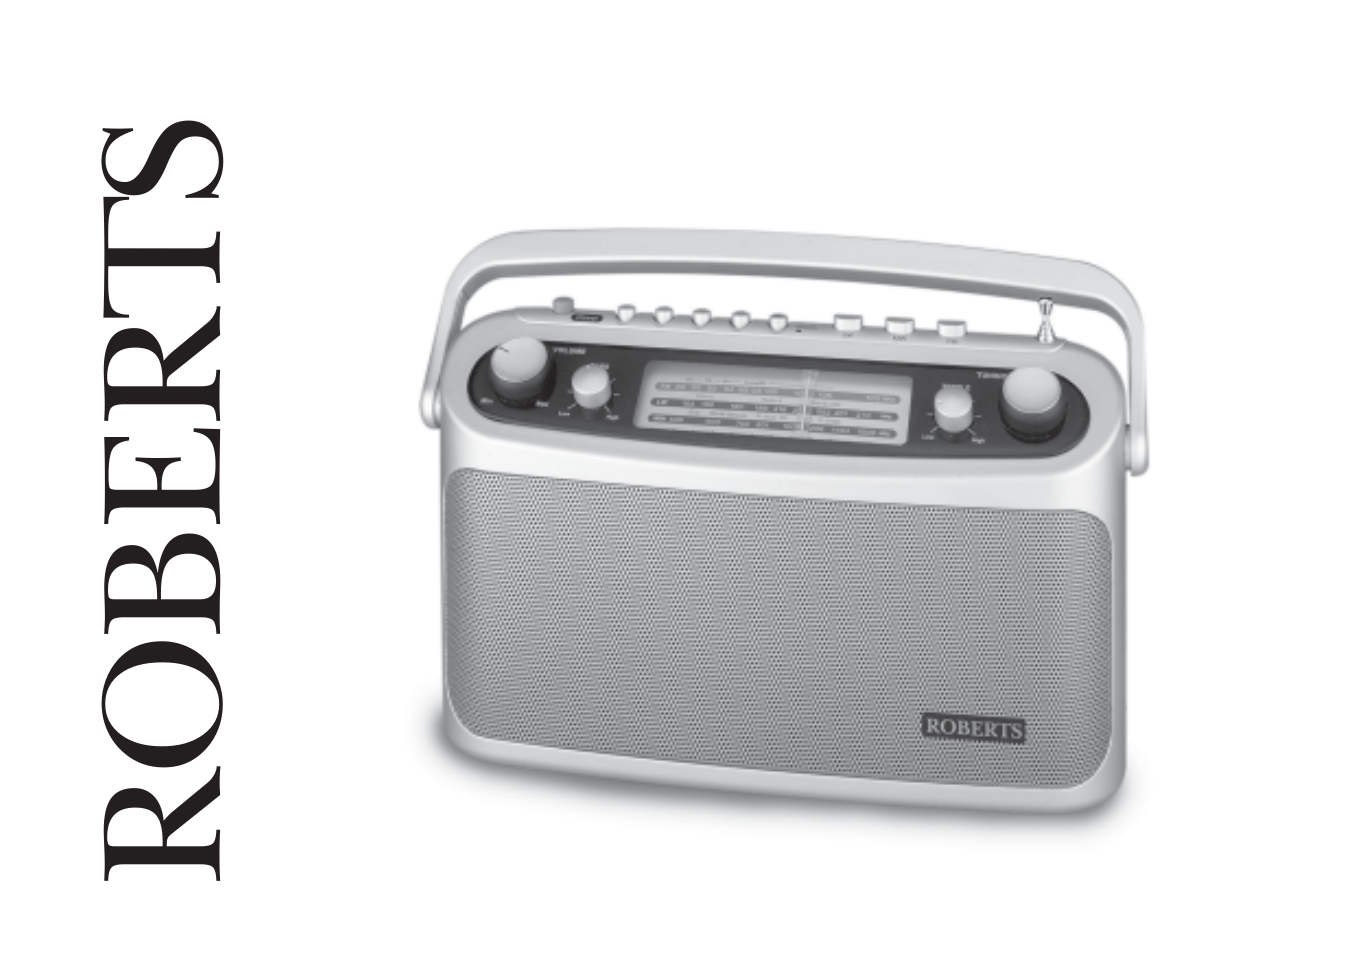 roberts radio r9928 user manual 12 pages rh manualsdir com Vintage Radio Manuals Cobra CB Radio Manual